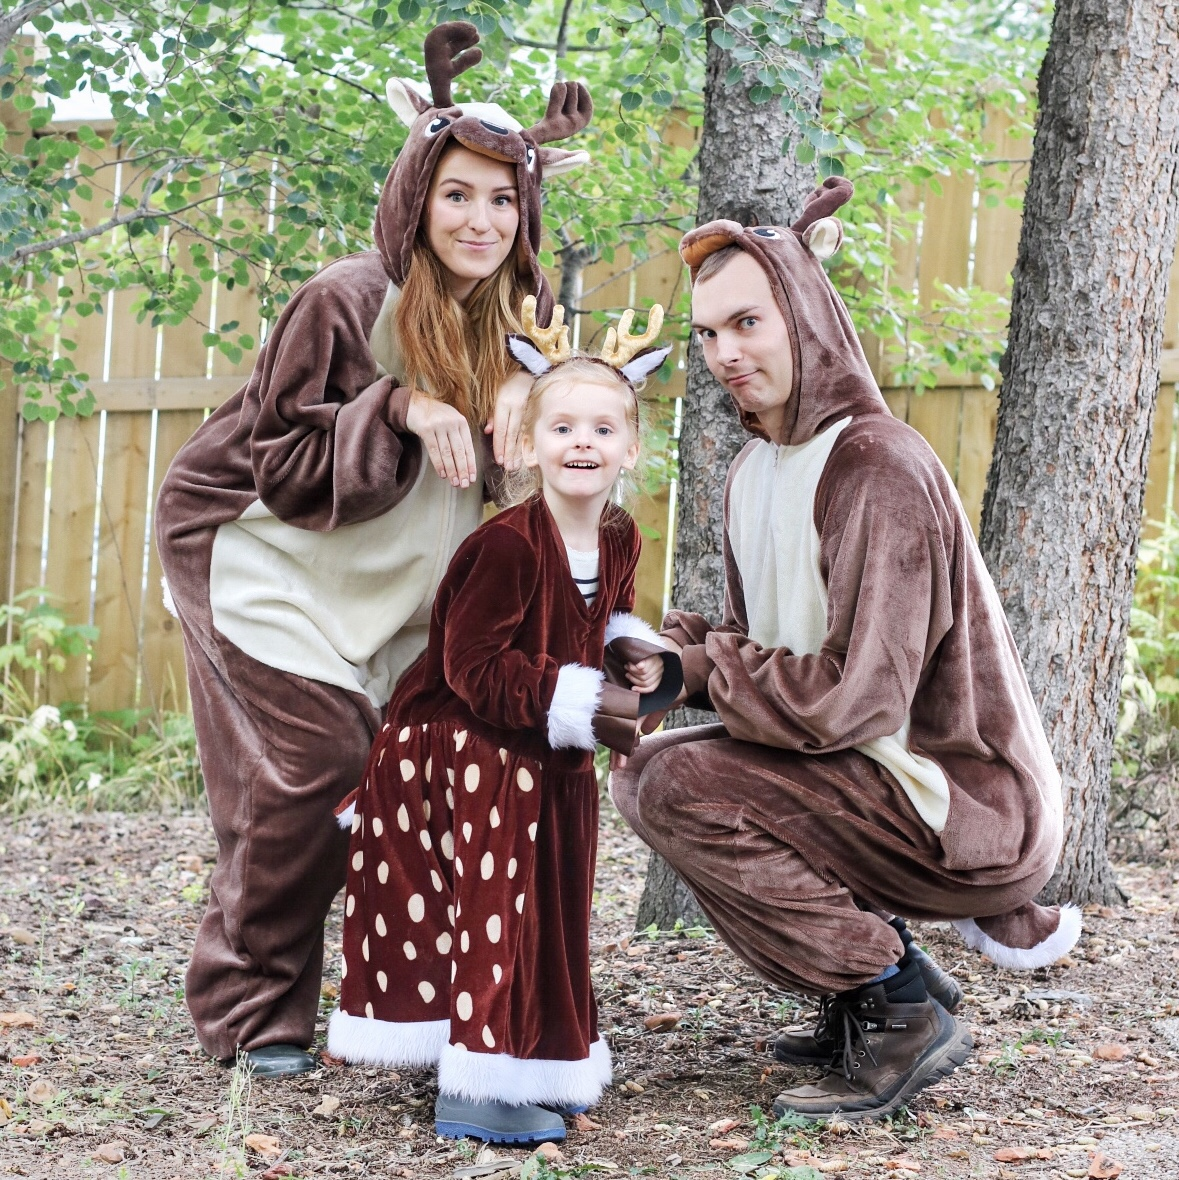 Halloween Costume Ideas For Family Of 3.3 Amazing Family Halloween Costume Ideas Last Minute Honey